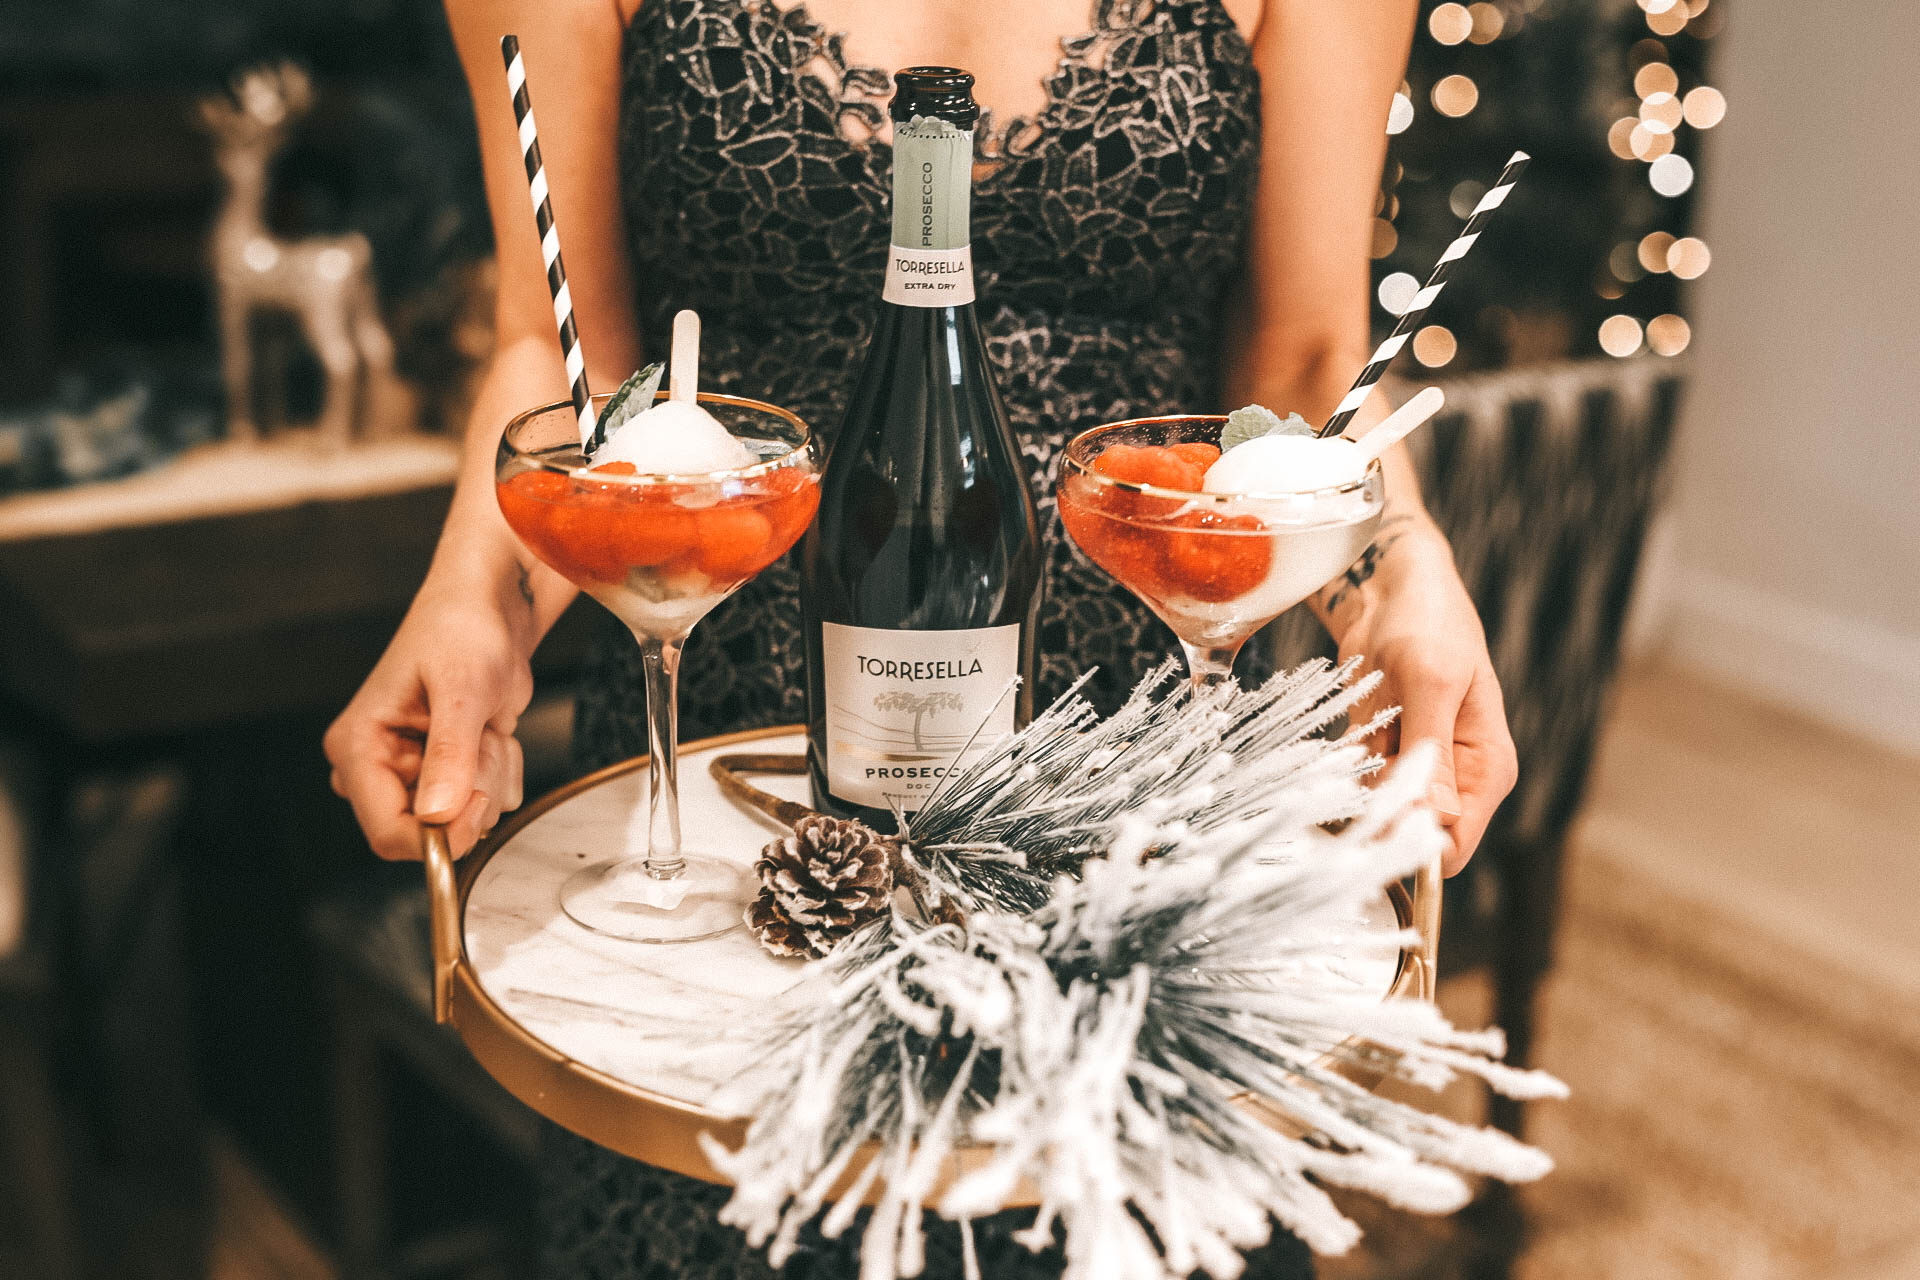 DTKAustin is sharing 2 EASY Cocktail Drinks for Your Holiday Party with Recipes frmo Torresella Wines. One is a White Wine Spritzer and the other is Prosecco Pop! Holiday Dress is ASTR, Earrings are Baublebar, Holiday Table decor is World Market || Dressed to Kill #christmastabledecor #christmasdrinks #christmasparty #holidaydrinks #holidayparty #hostingparty #torresella #torresellawine #dtkaustin